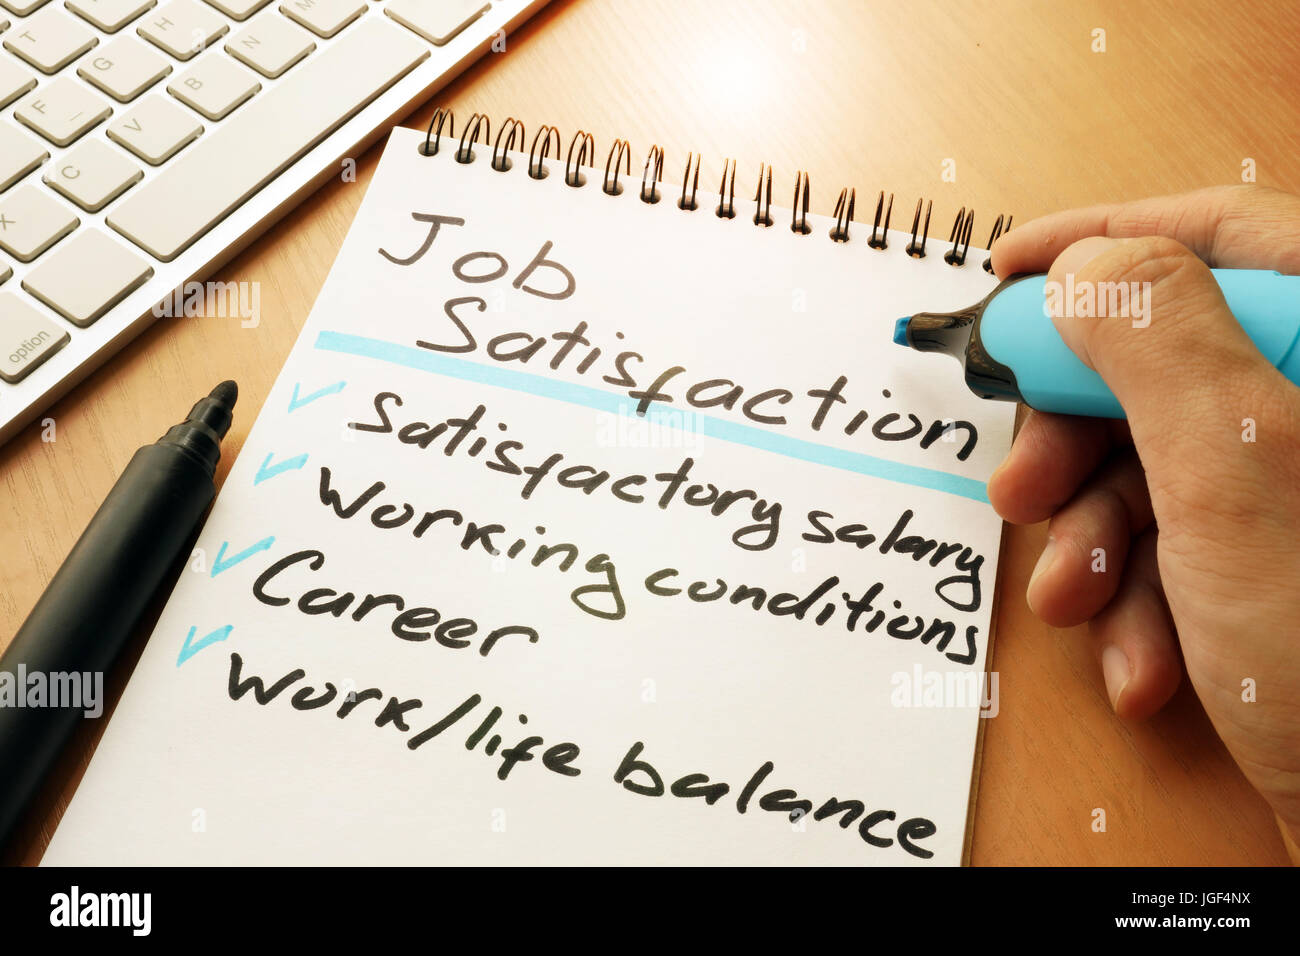 Job satisfaction list written by hand. - Stock Image